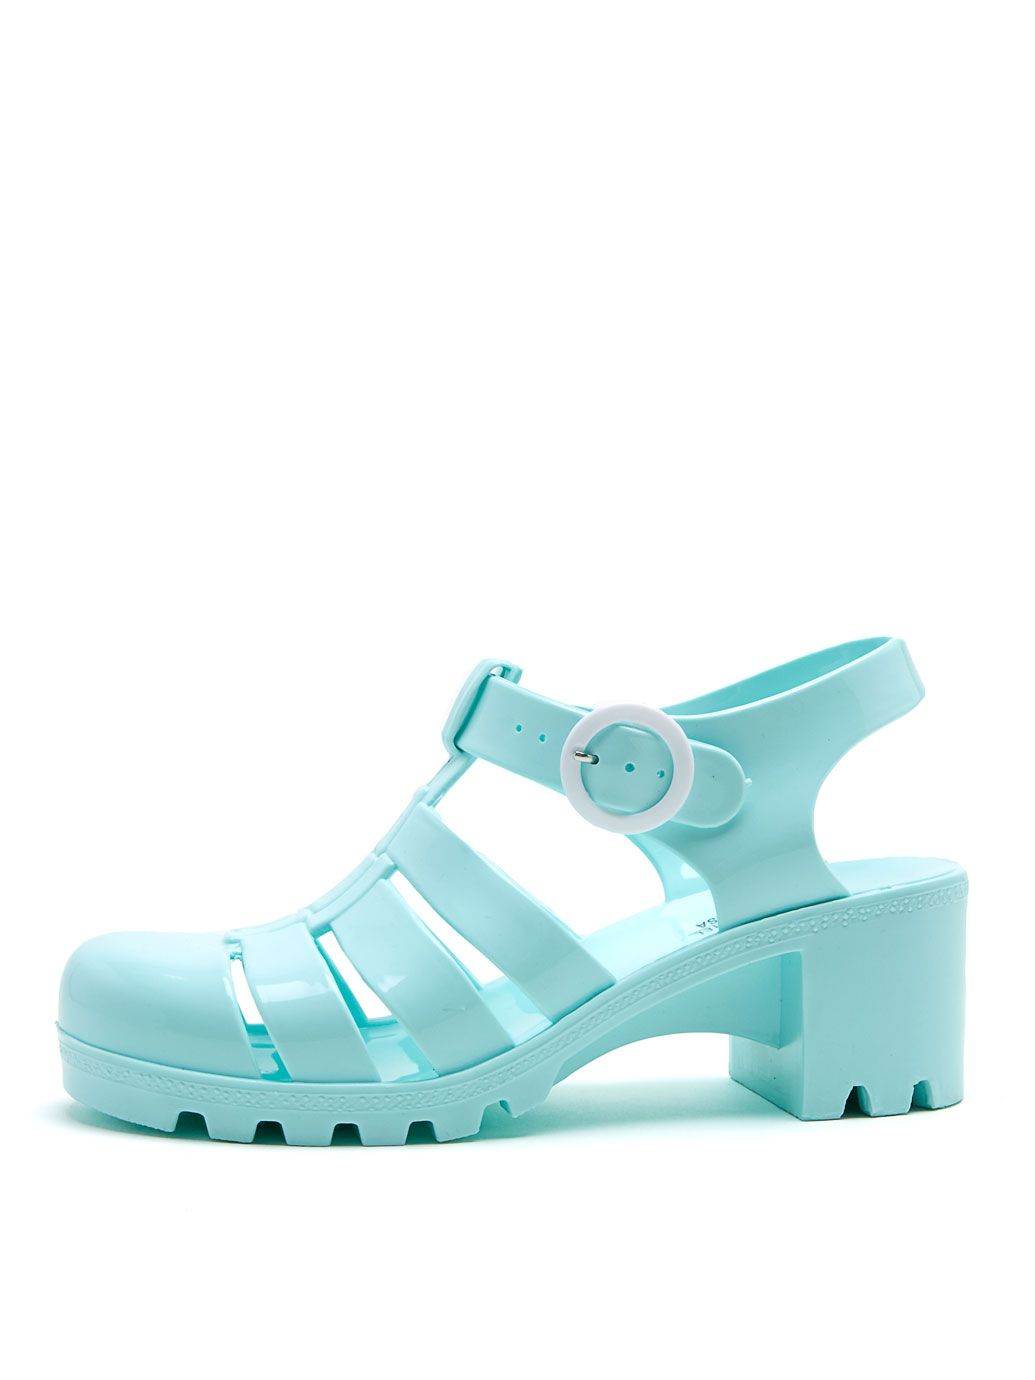 57e1f777d799 American Apparel has made the jelly sandal a hipster wardrobe staple with  not one but four takes on the shoe